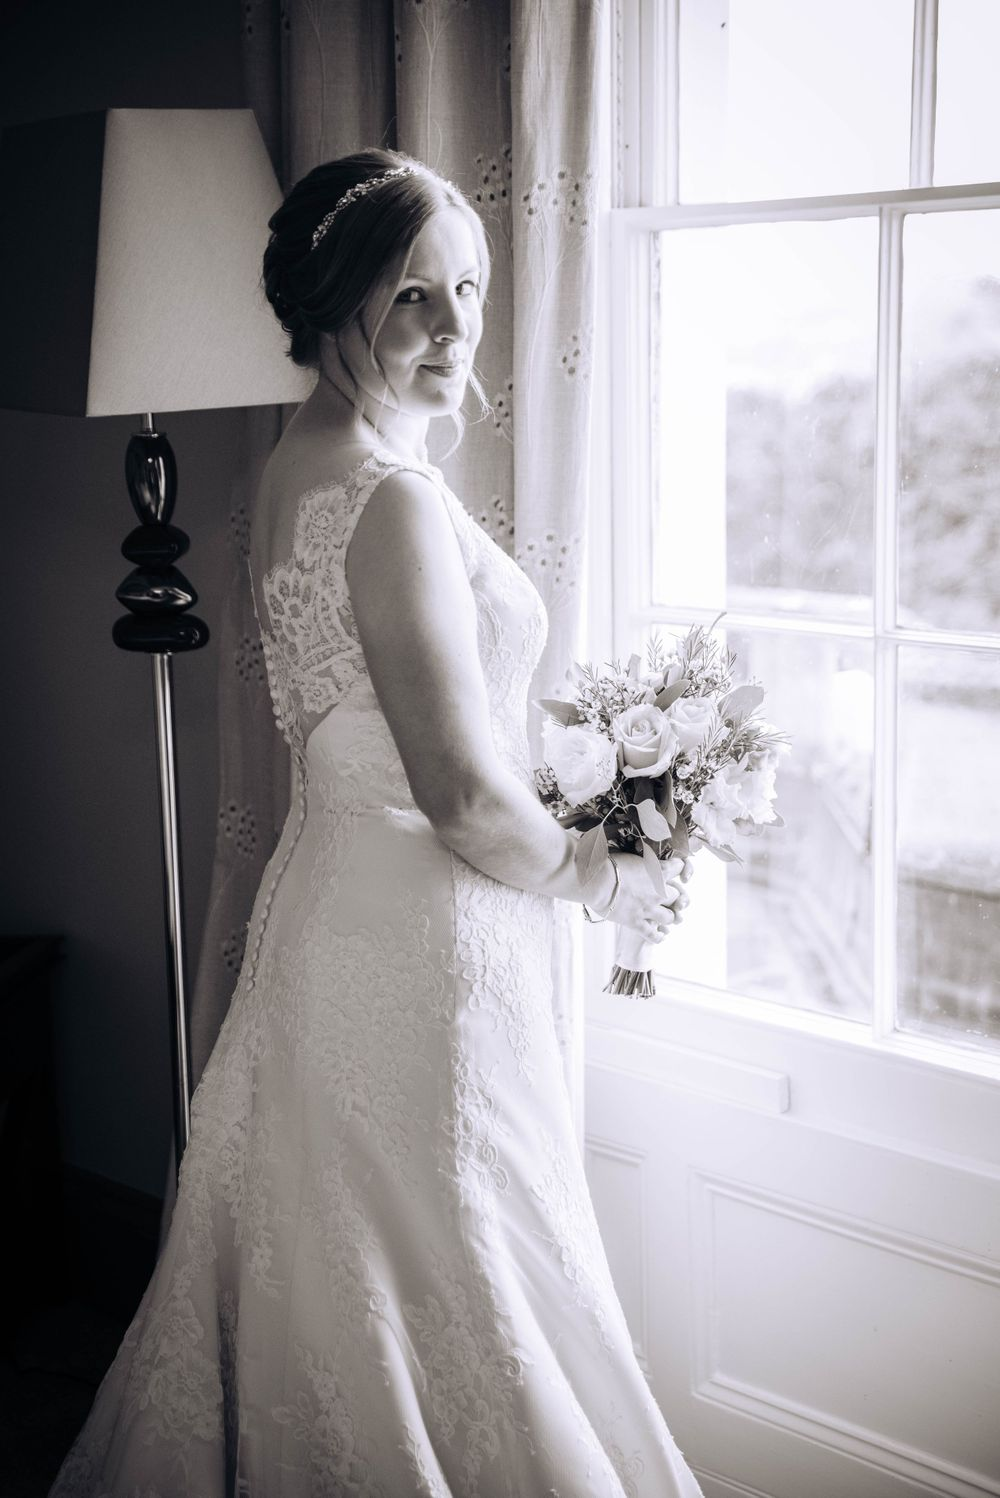 Zara Davis Wedding Photography Near Stroud, Gloucestershire, Cotswolds Glenfall House bridal portrait black and white